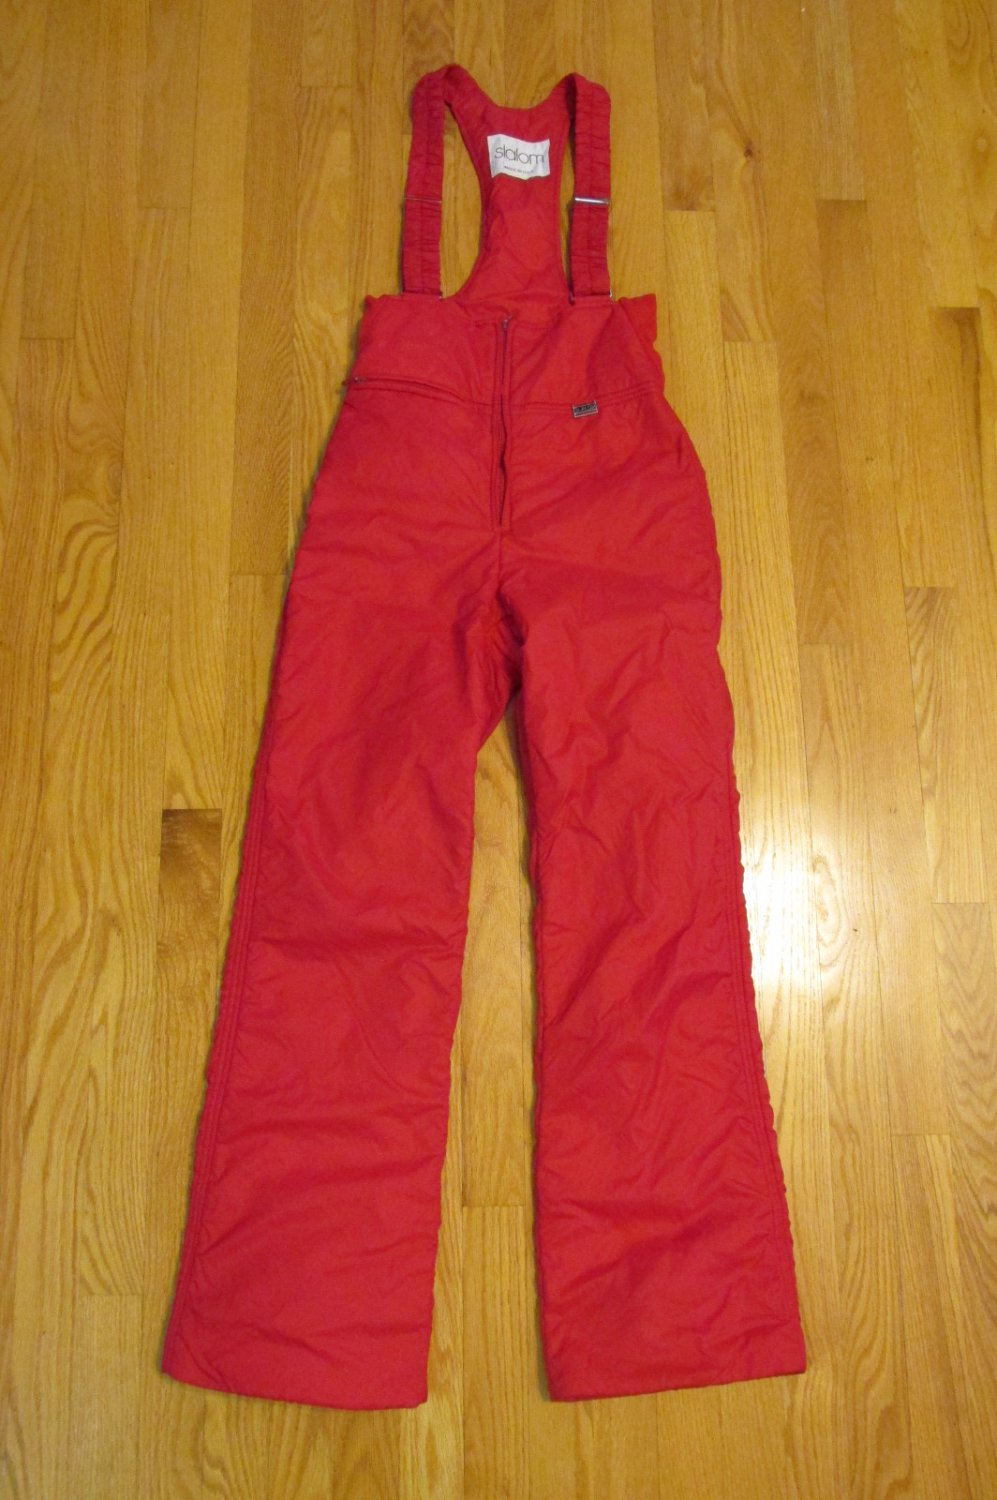 SLALOM WOMEN'S GIRL'S SIZE 26 SNOW PANTS RED OVERALLS WINTER OUTERWEAR RETRO